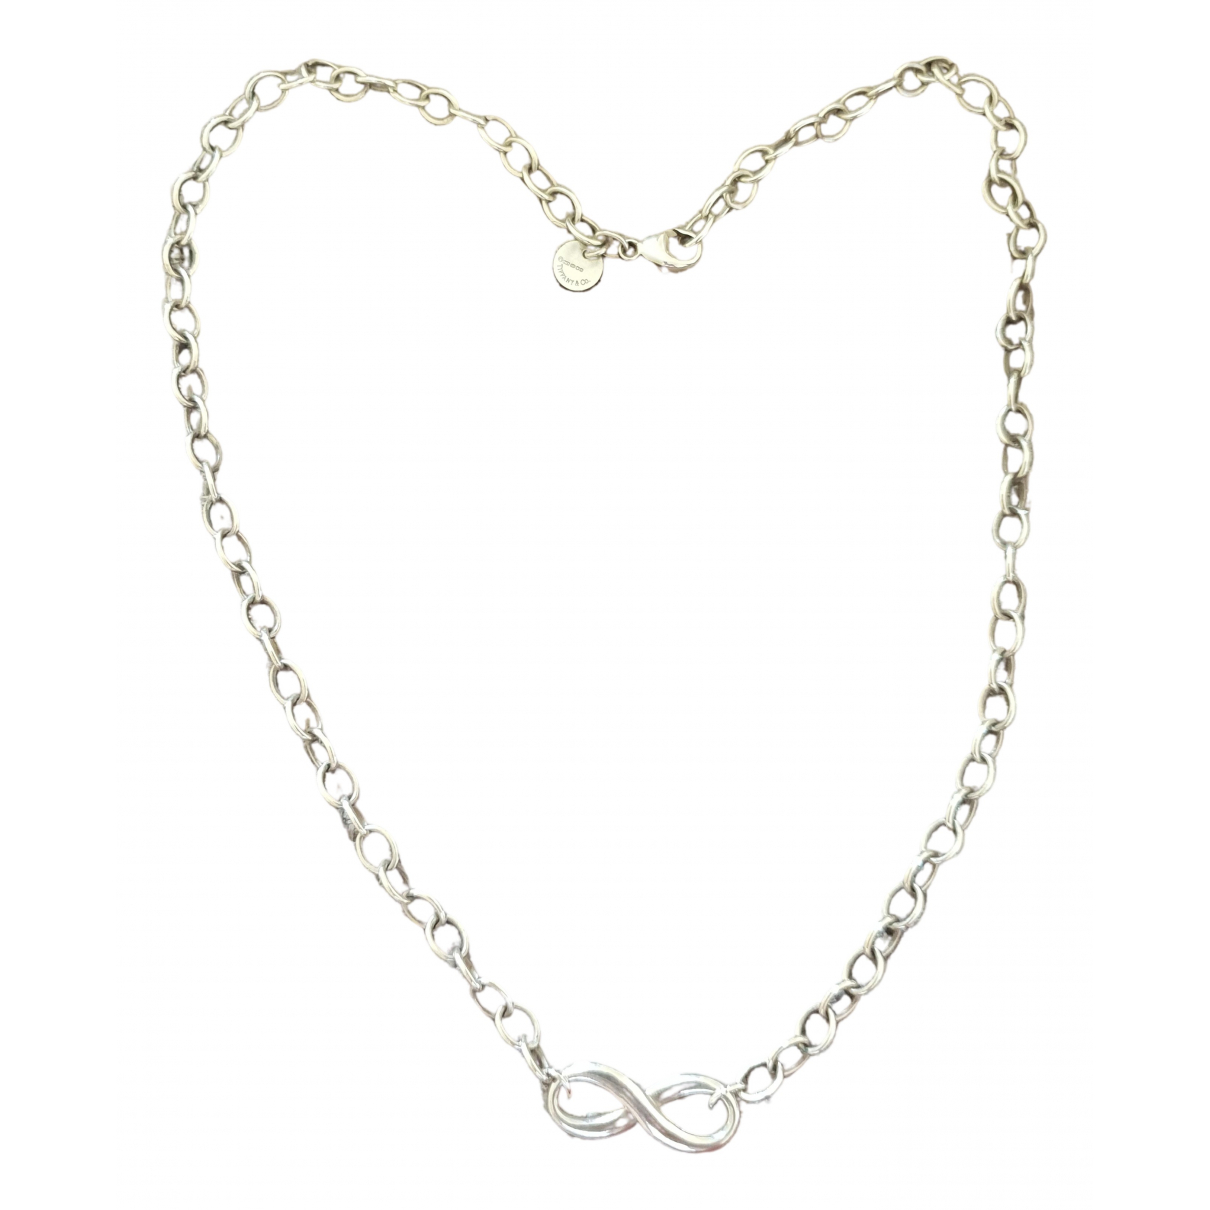 Tiffany & Co Tiffany Infinity Kette in  Silber Silber